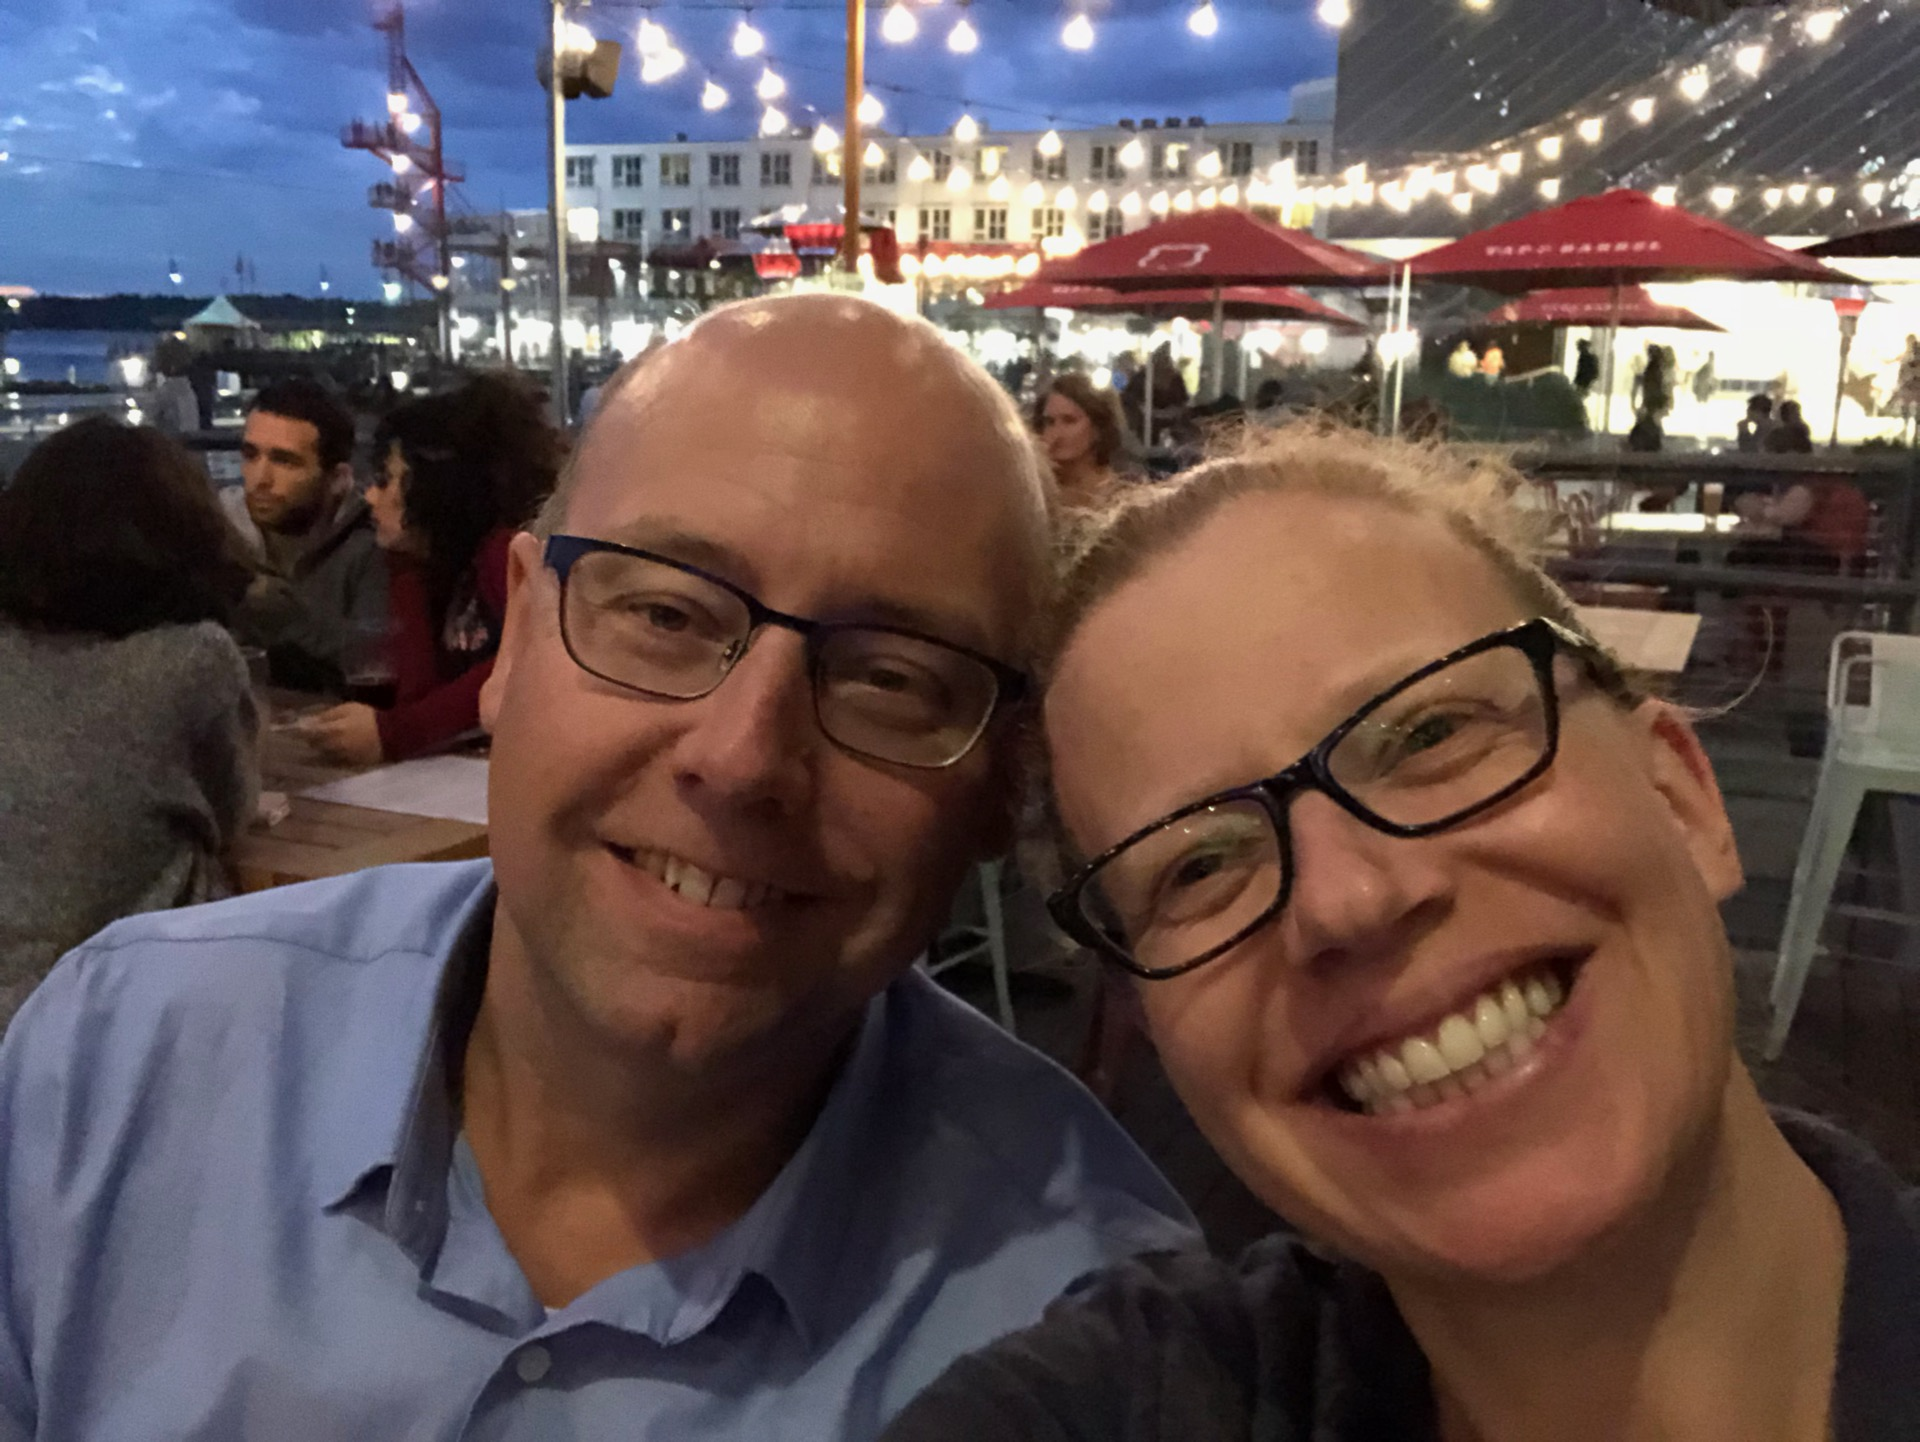 We had a fun night, and wrapped it up with dinner on the patio.